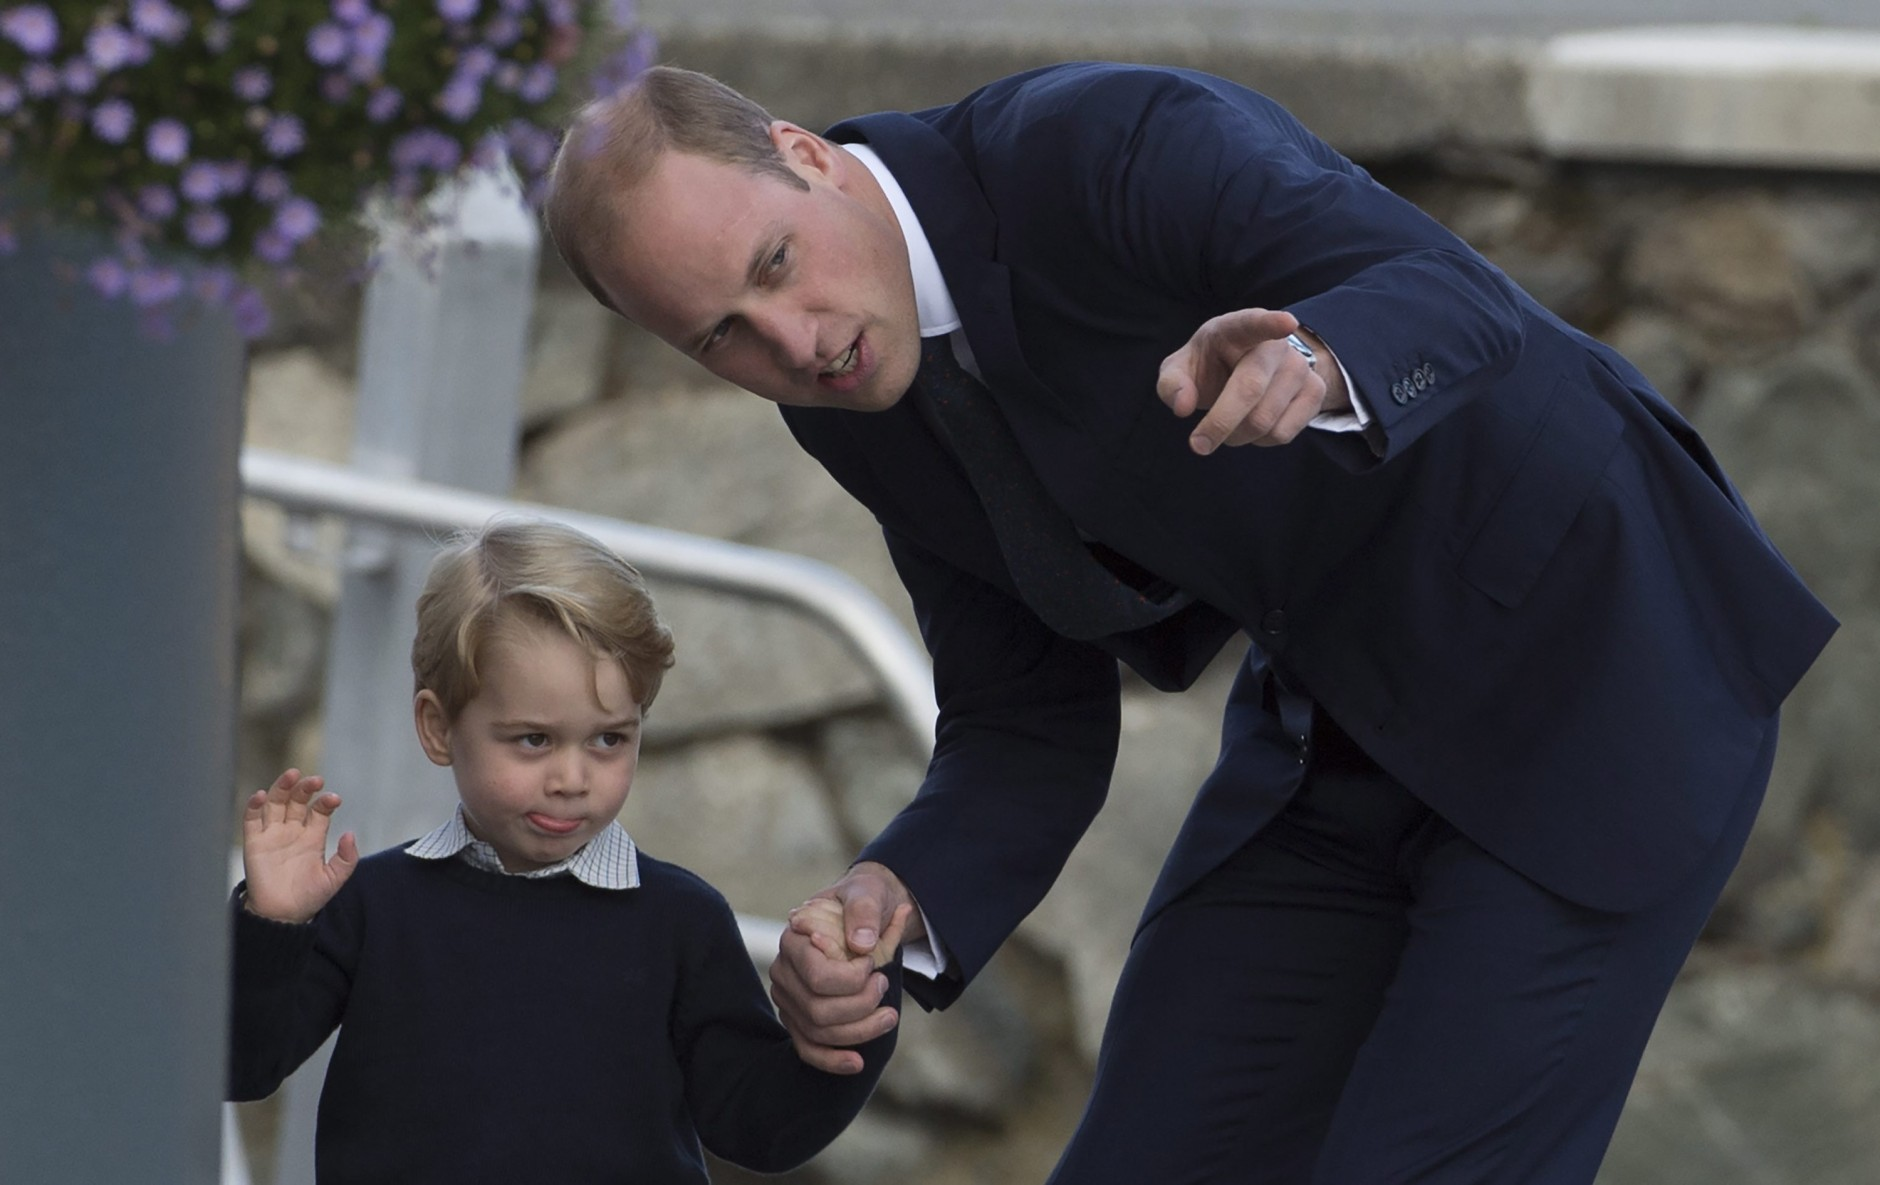 Britain's Prince William, the Duke of Cambridge, and his son, Prince George, wave to the crowd prior to boarding a float plane as they prepare to depart Victoria, British Columbia, Canada, on Saturday, Oct. 1, 2016. (Jonathan Hayward/The Canadian Press via AP)